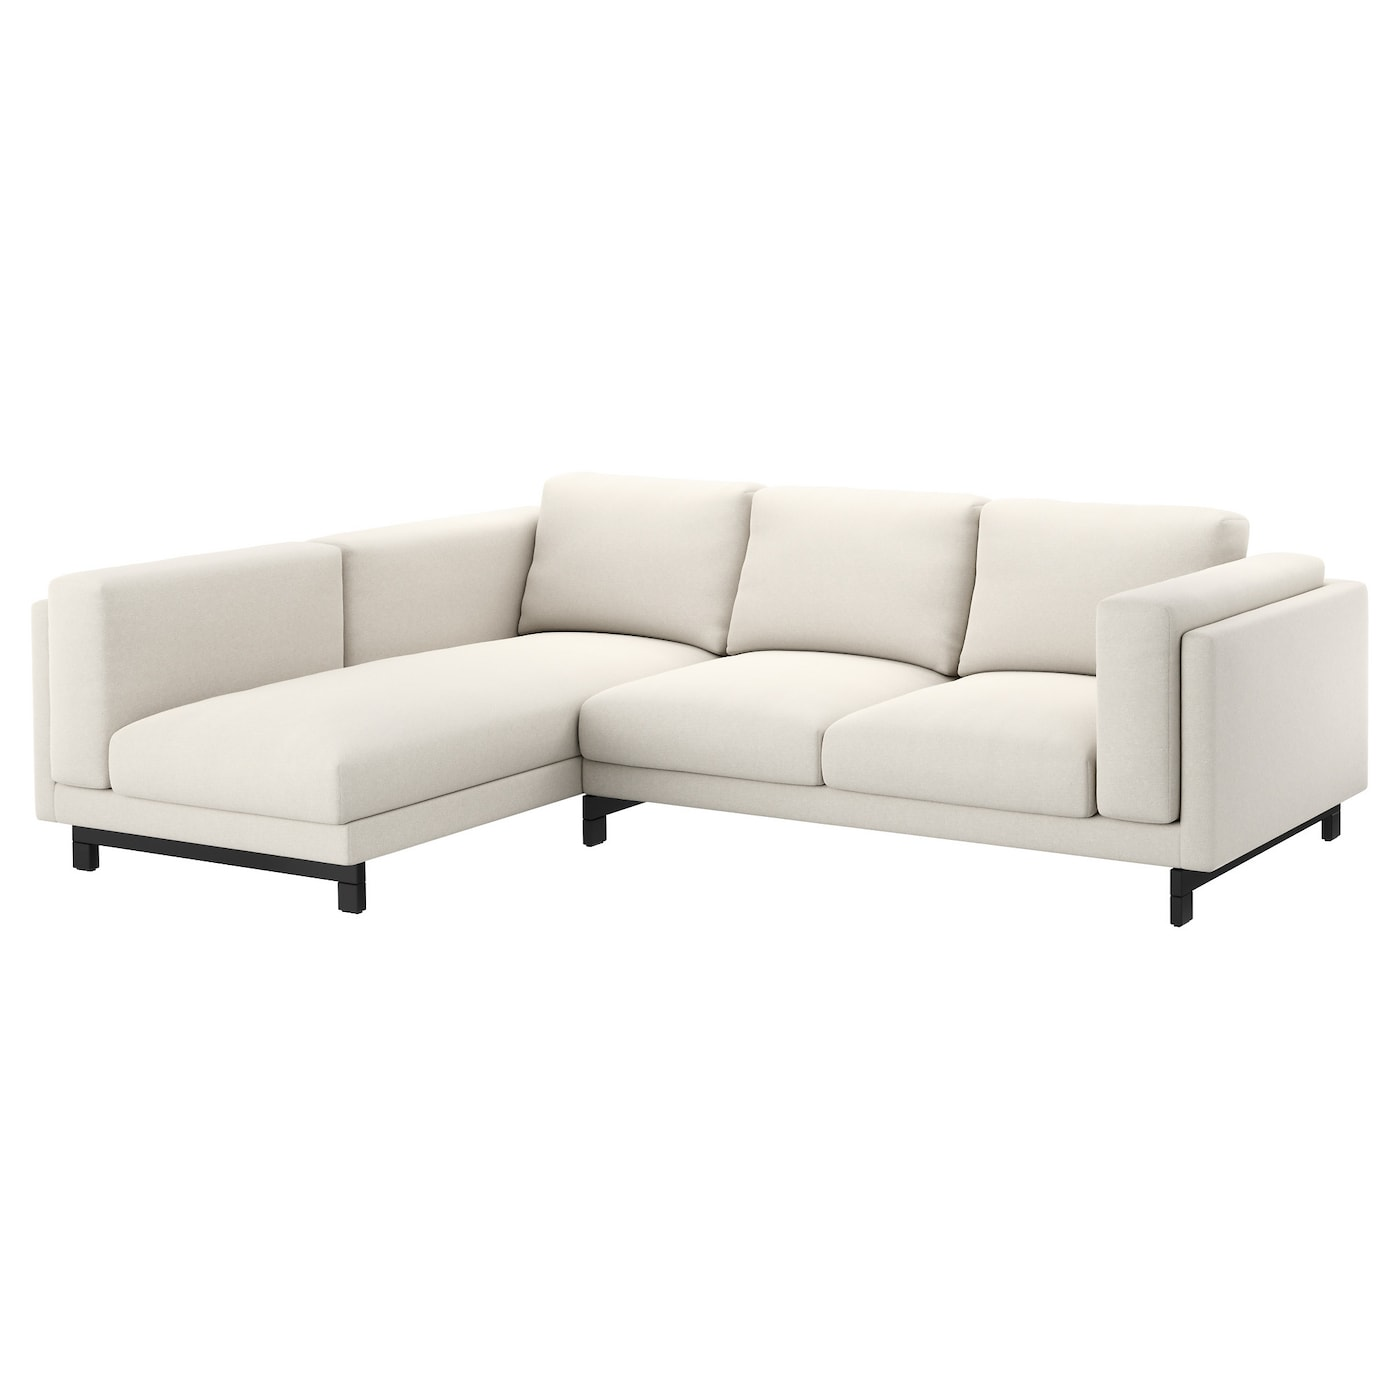 Nockeby 3 seat sofa with chaise longue left tallmyra for 3 seat sofa with chaise